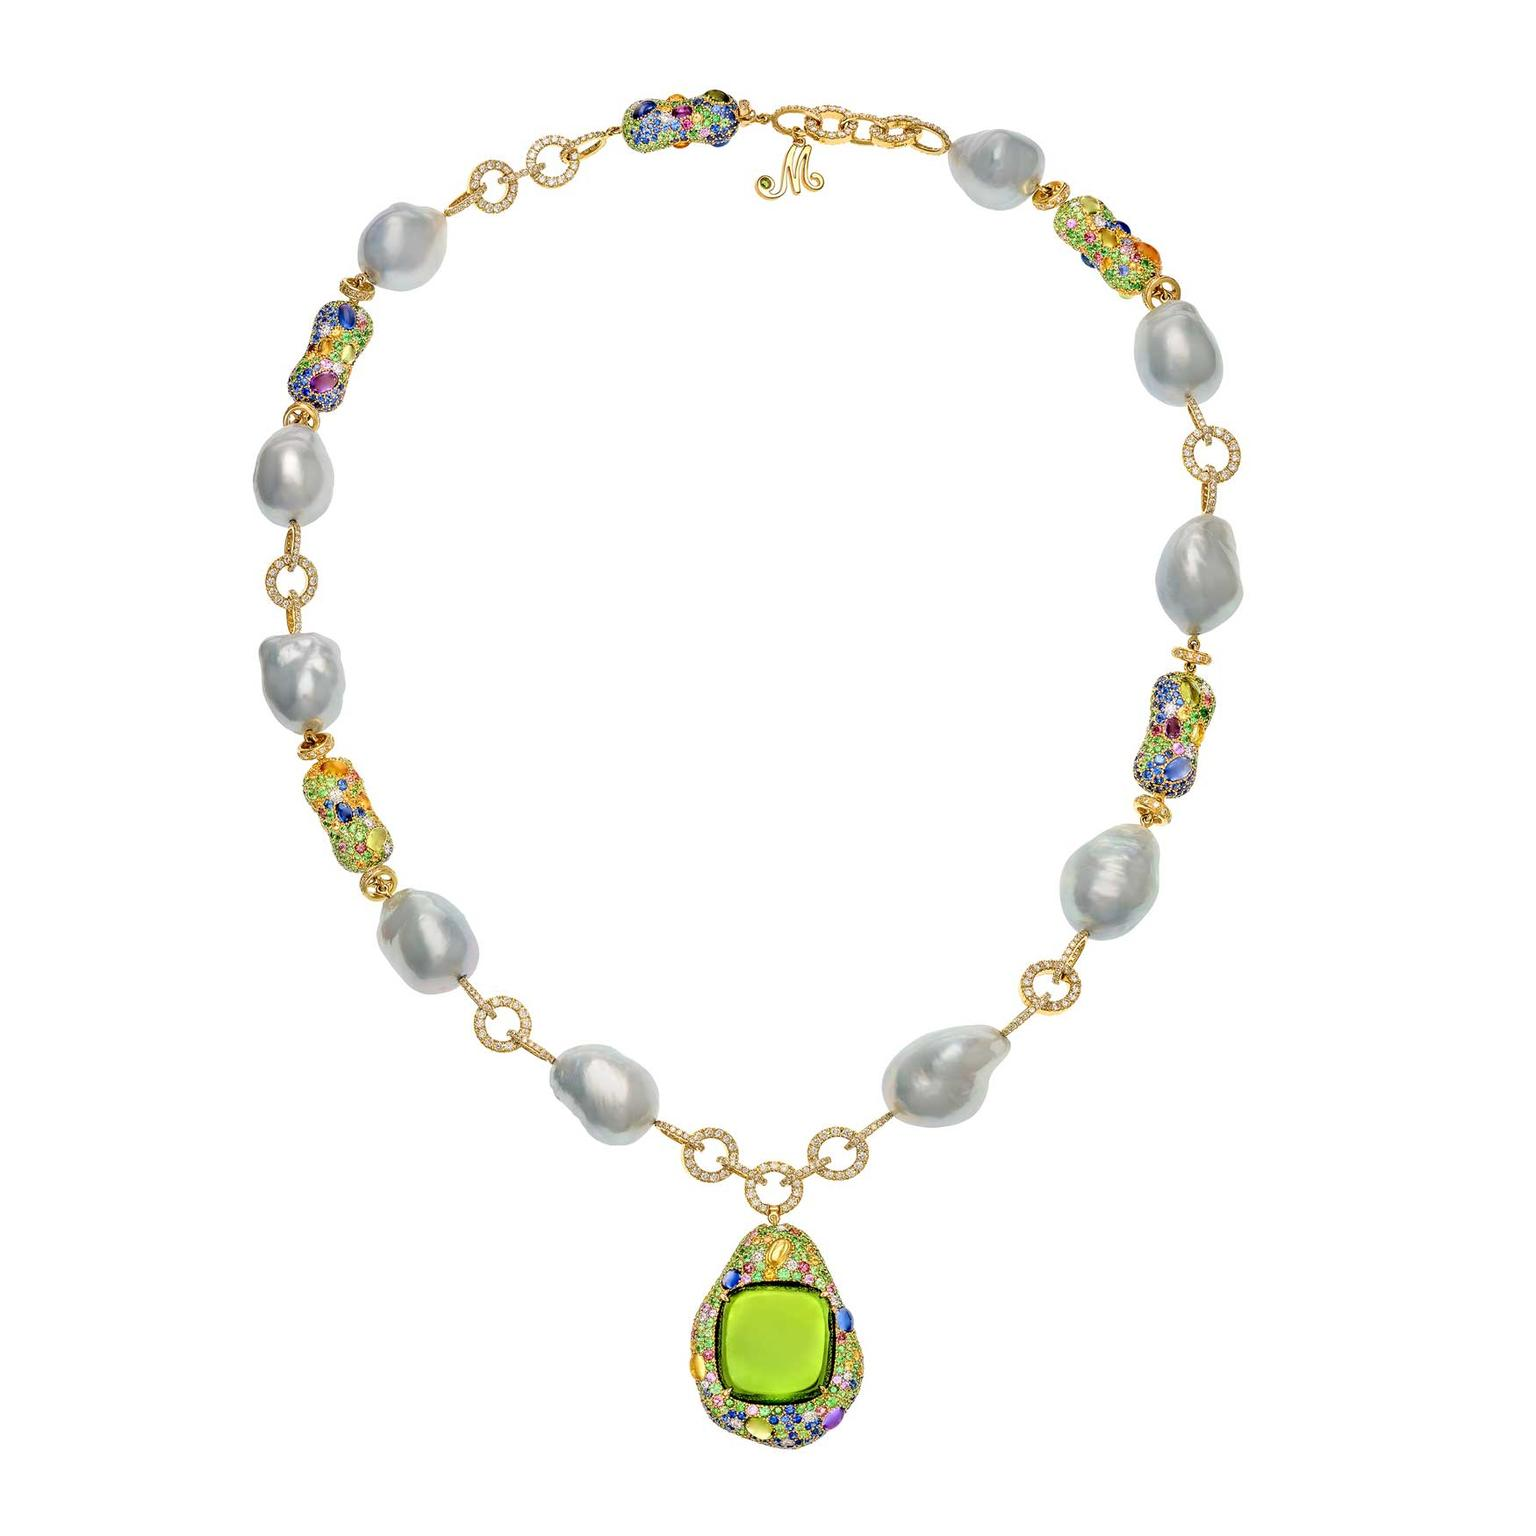 Top Baroque pearl and peridot pendant necklace | Margot McKinney | The  SA11